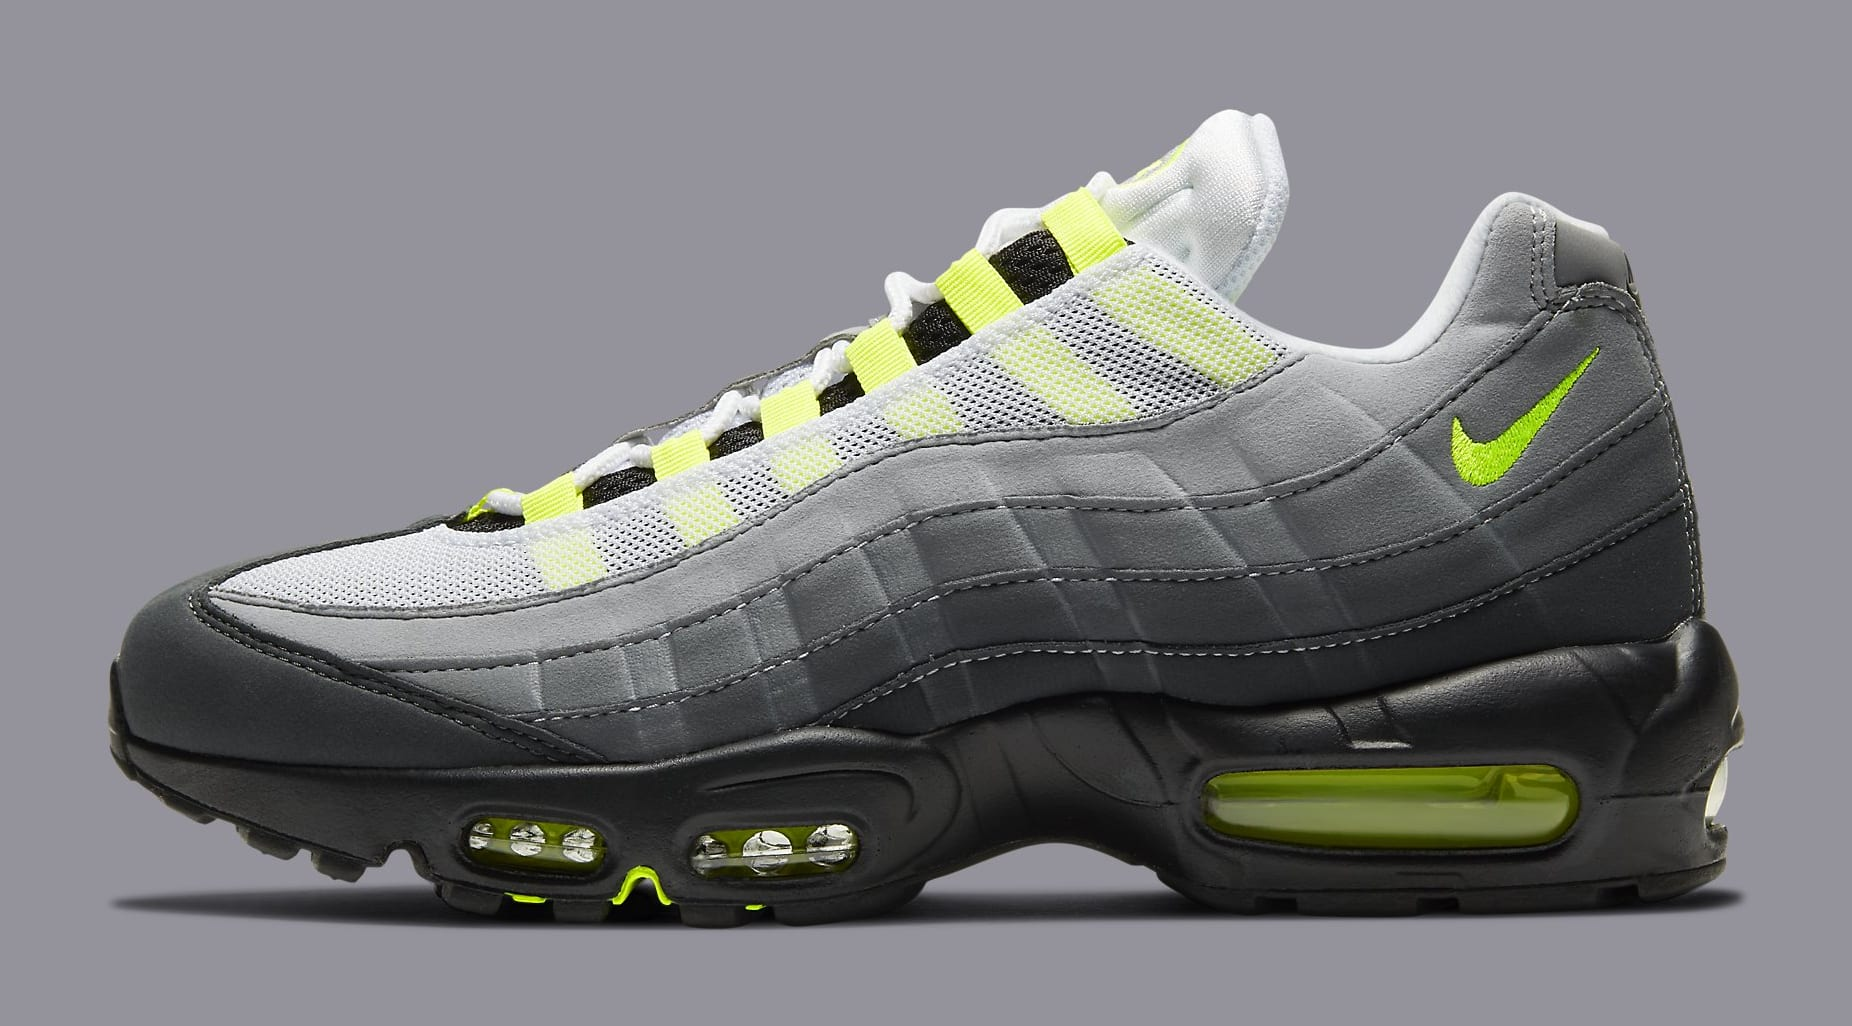 Nike Air Max 95 'Neon 2020' CT1689-001 Lateral